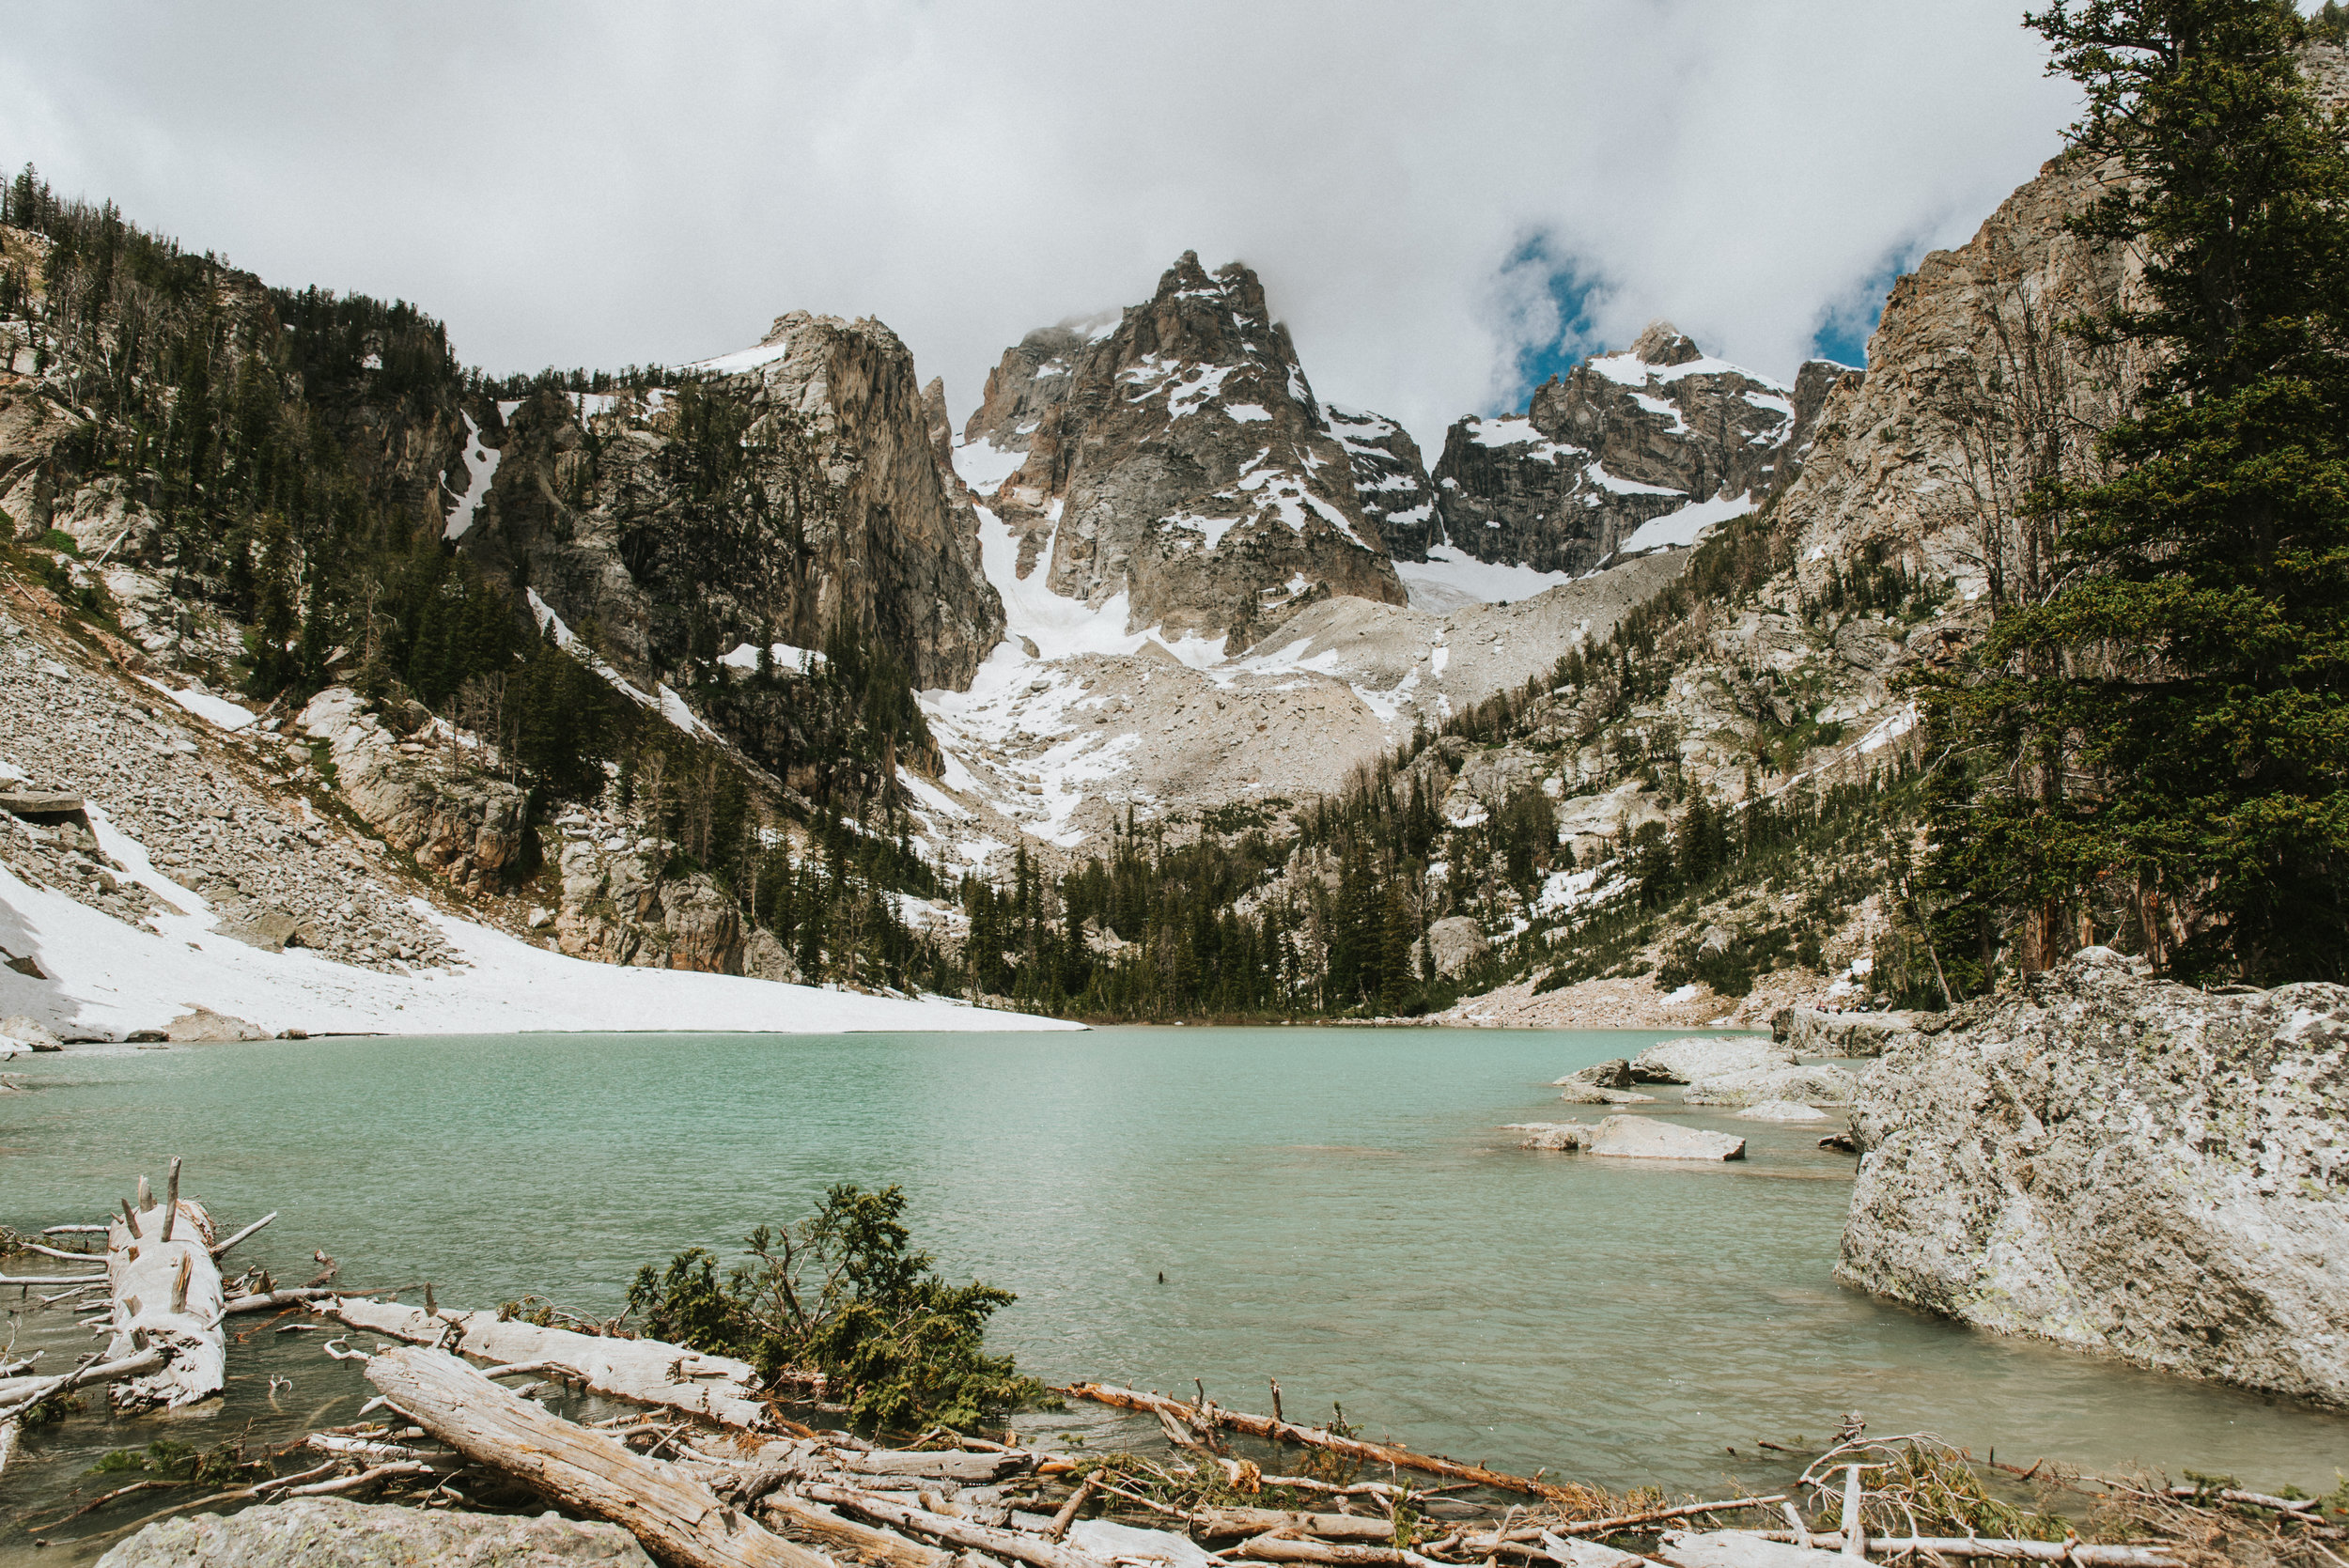 """This is a lake in Grand Teton National Park that I stumbled across on Google images and HAD to find for myself! It's not found on """"best hikes in the Tetons"""" lists and the trail is no longer maintained by the park. But it stands as one of my most favorite hikes I've ever done, and it was all the more satisfying because I had to work to find it myself. (And therefore, was a lot less crowded!)"""